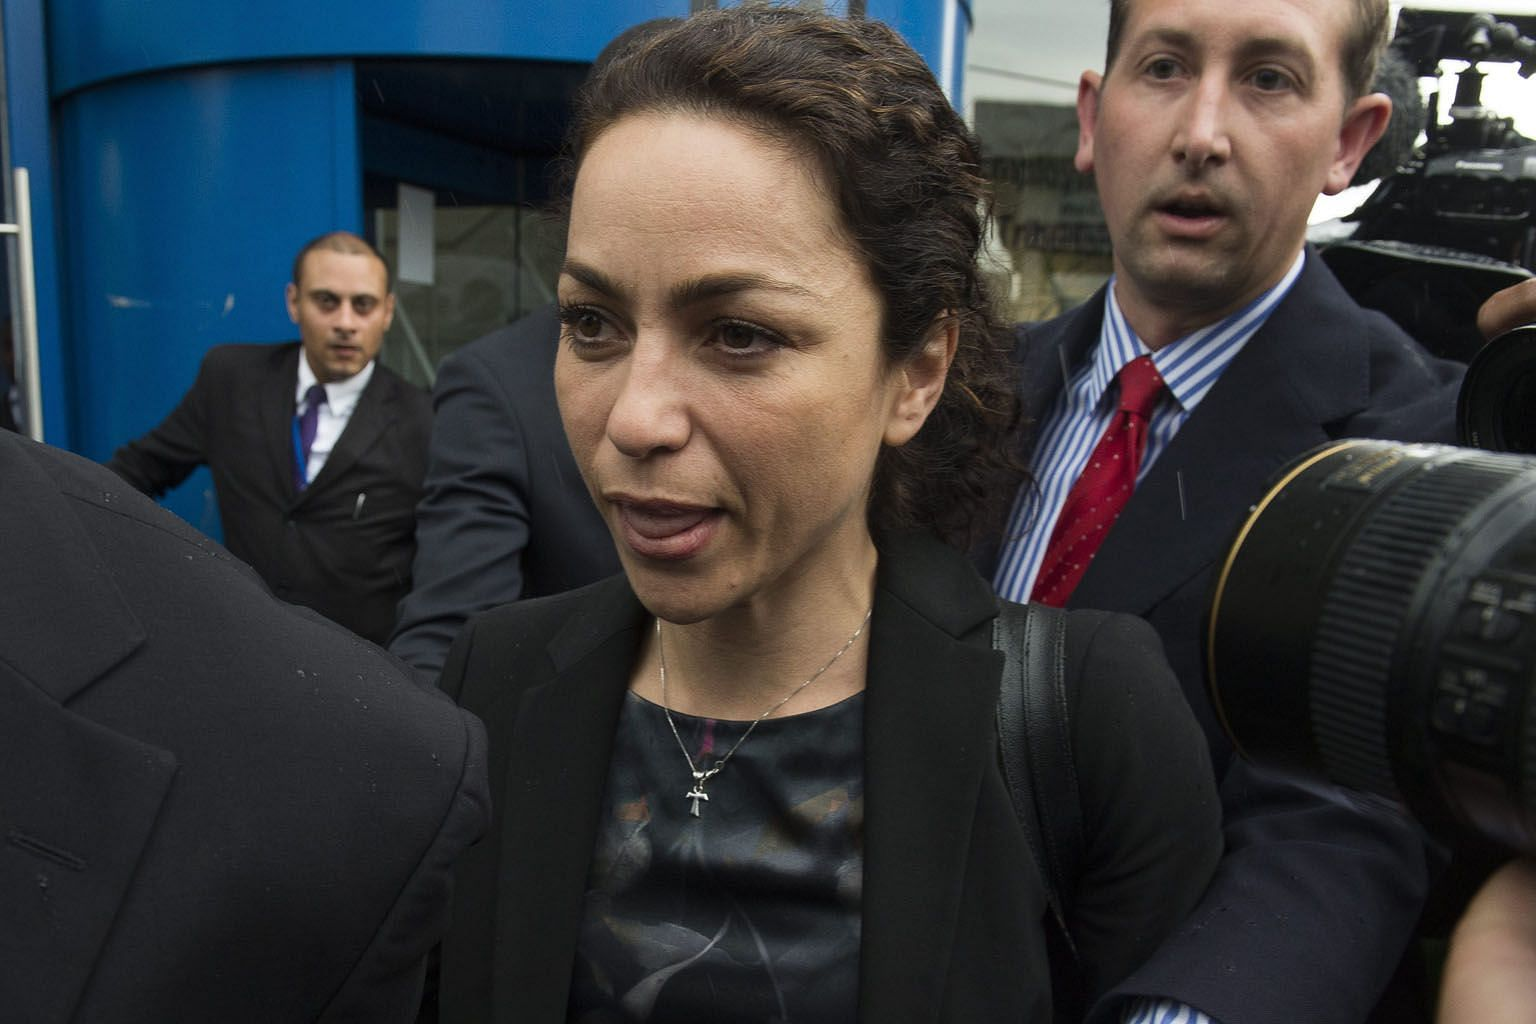 Former Chelsea doctor Eva Carneiro leaving an employment tribunal in Croydon on Tuesday. She settled a constructive dismissal claim against the club for an unspecified amount.